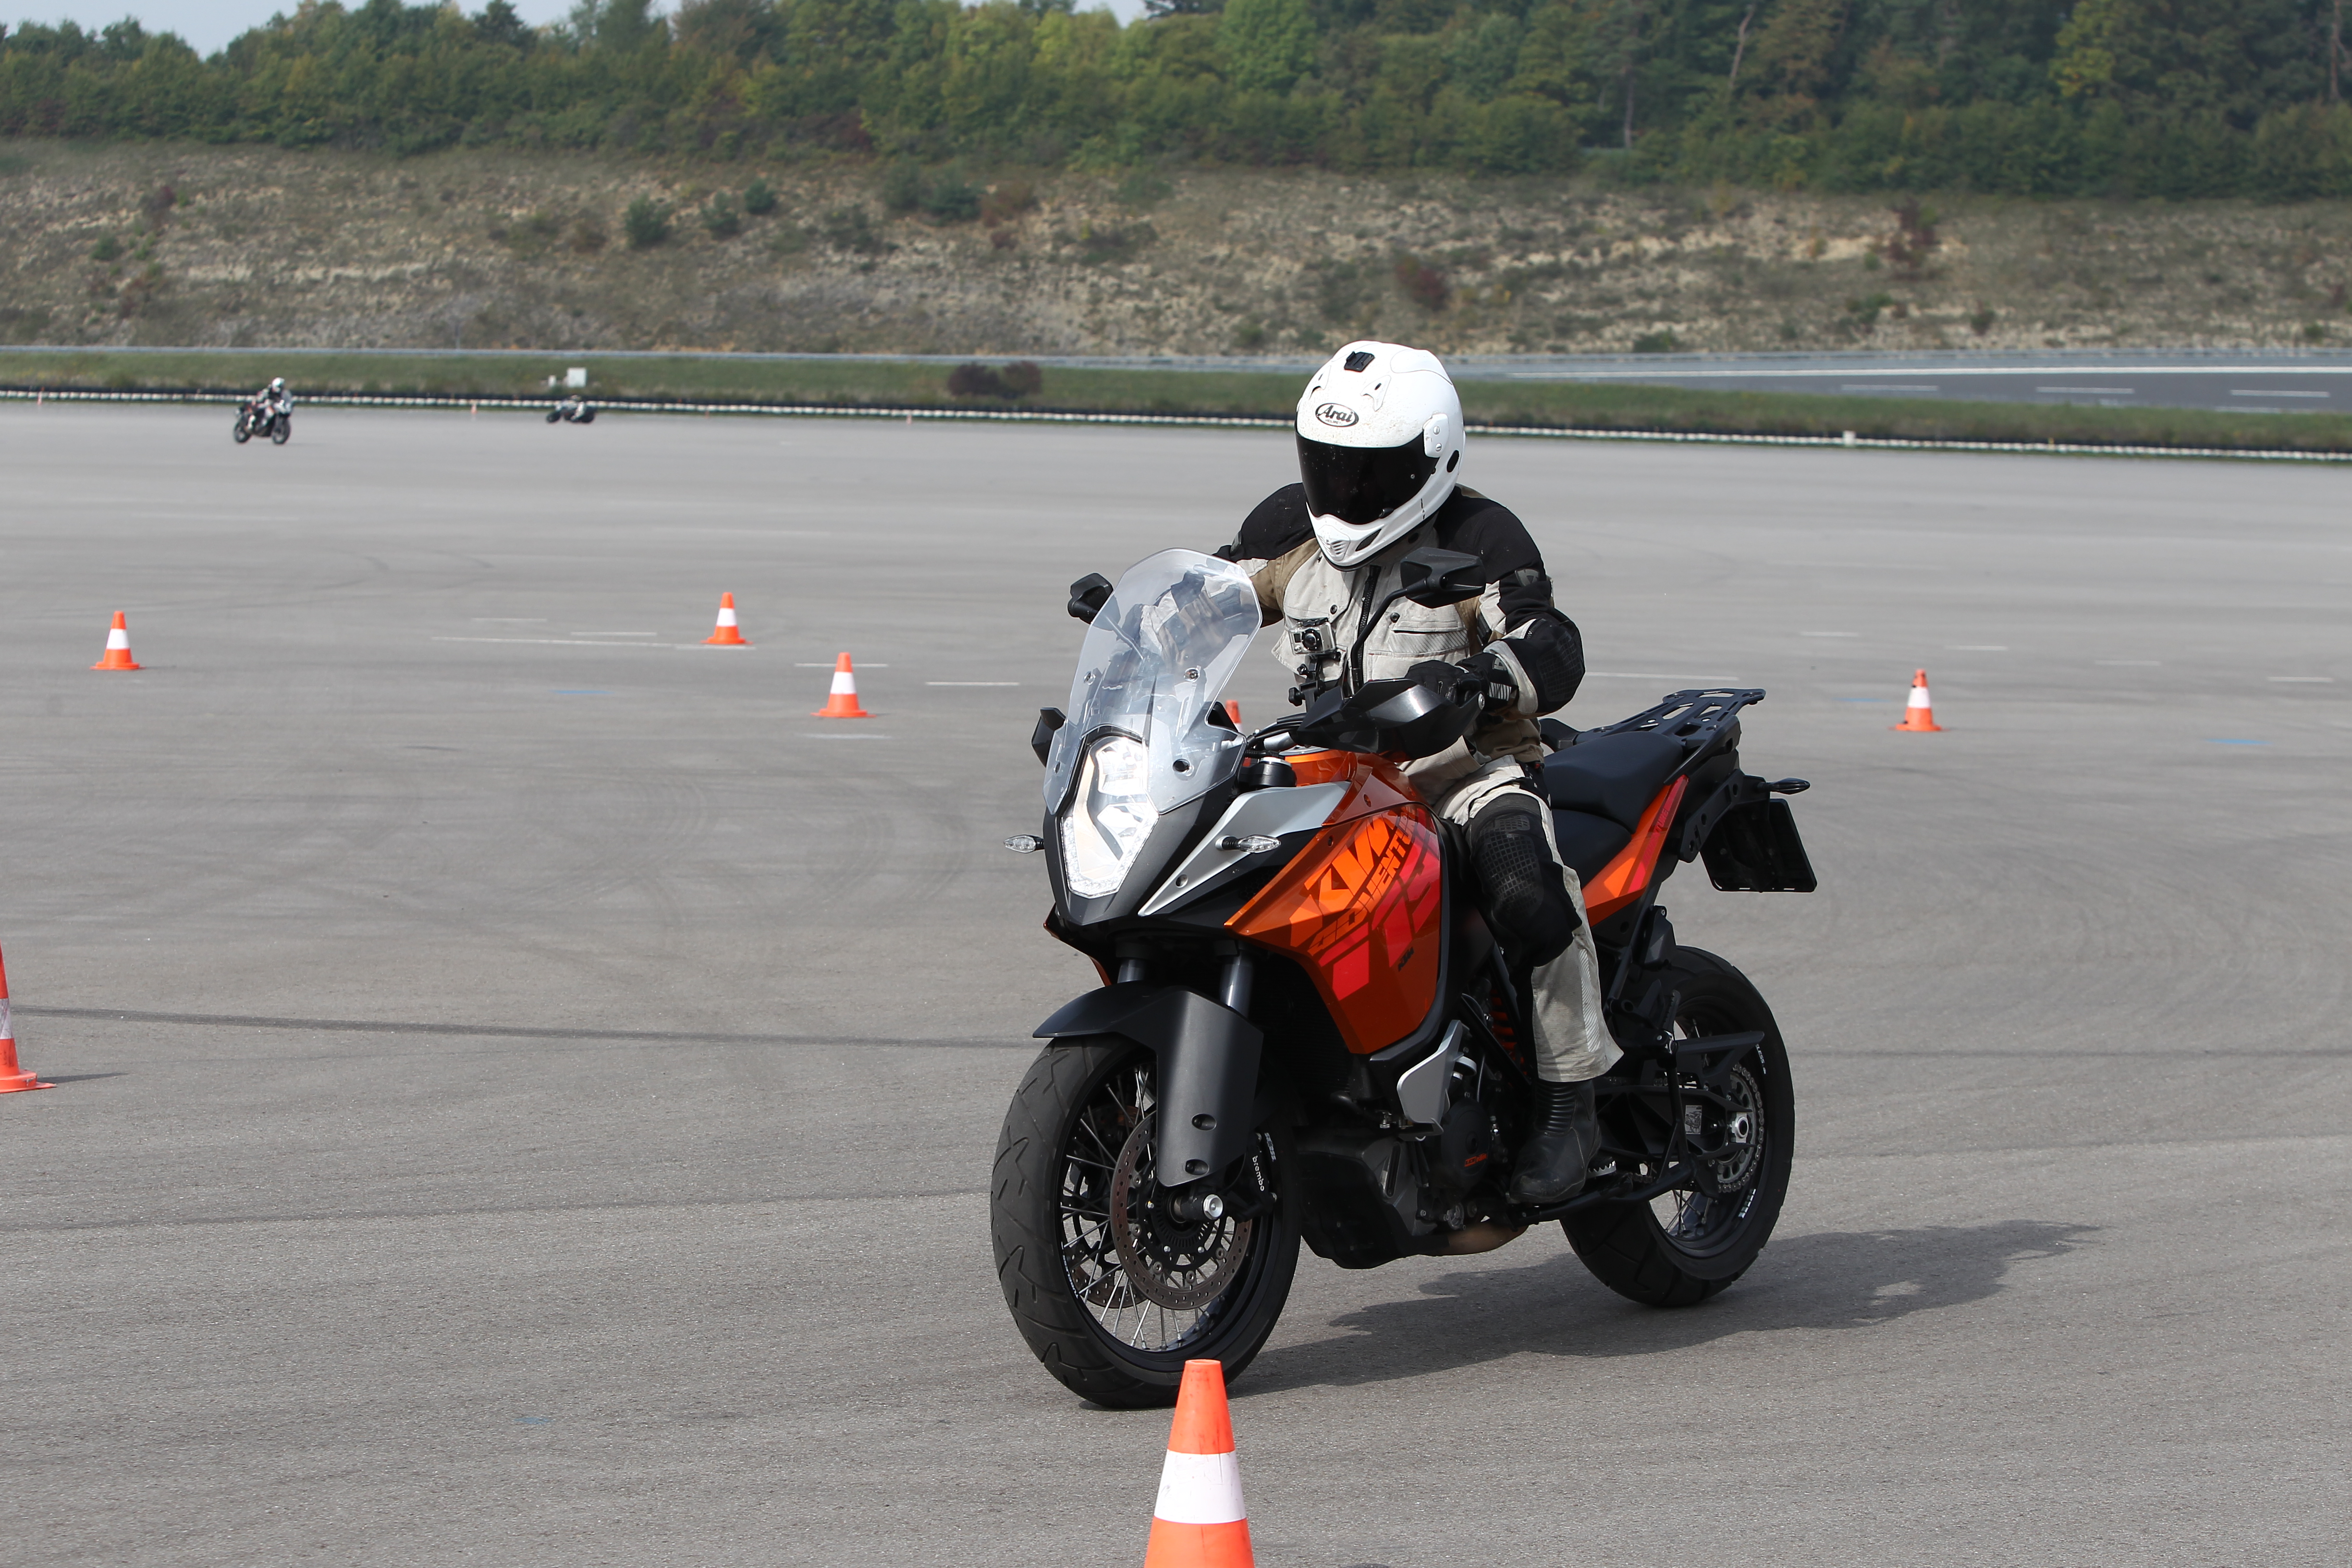 First Ride: KTM 1190 Adventure with cornering ABS